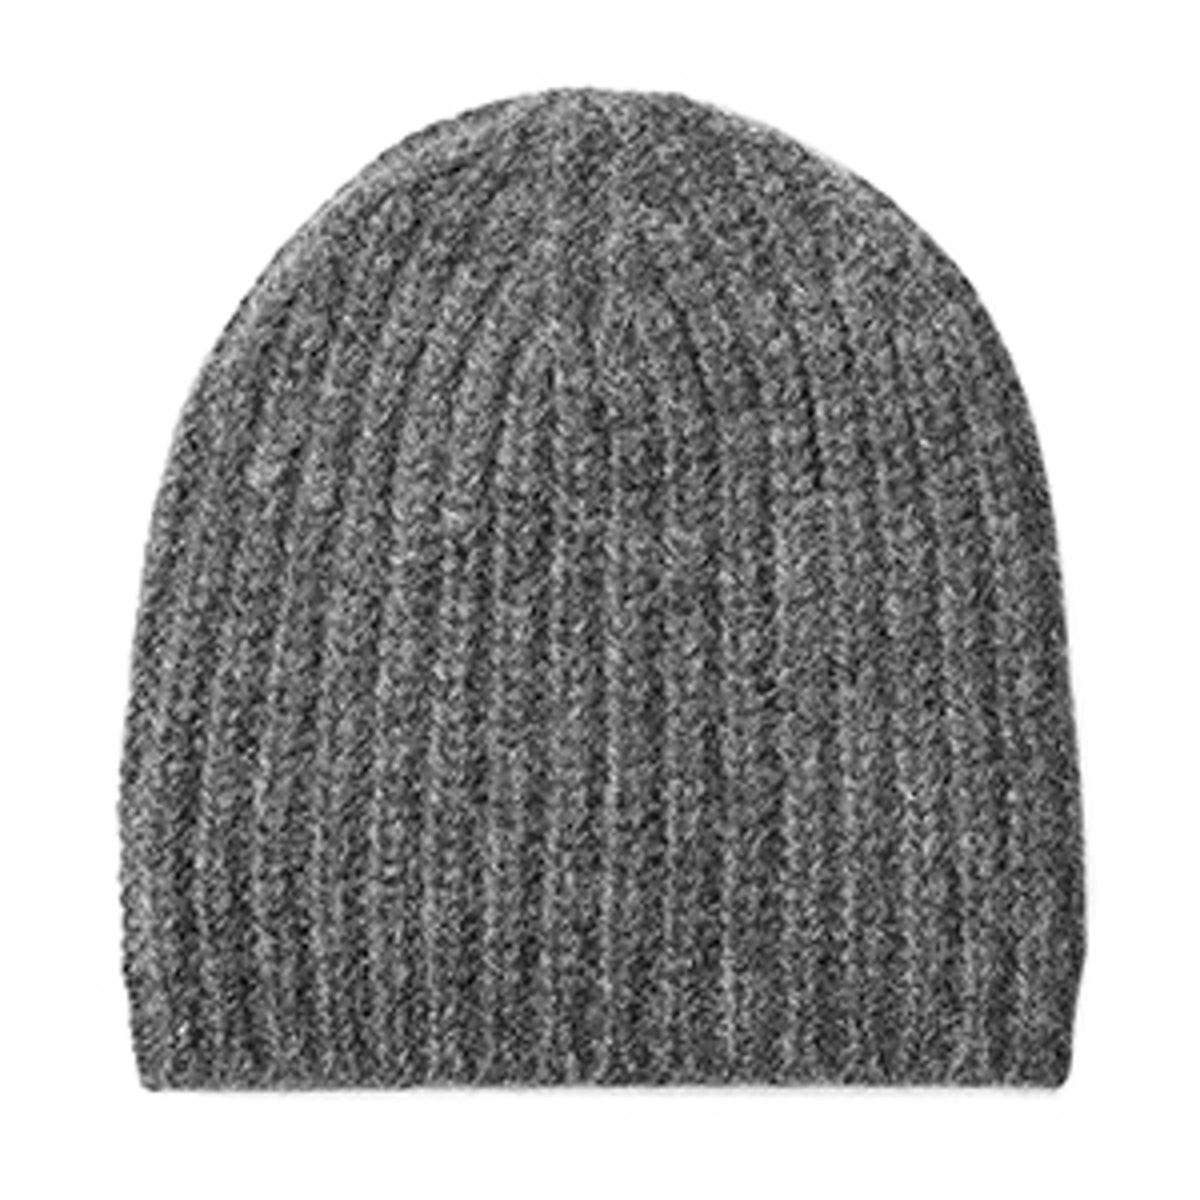 Knit Hat with Alpaca and Wool